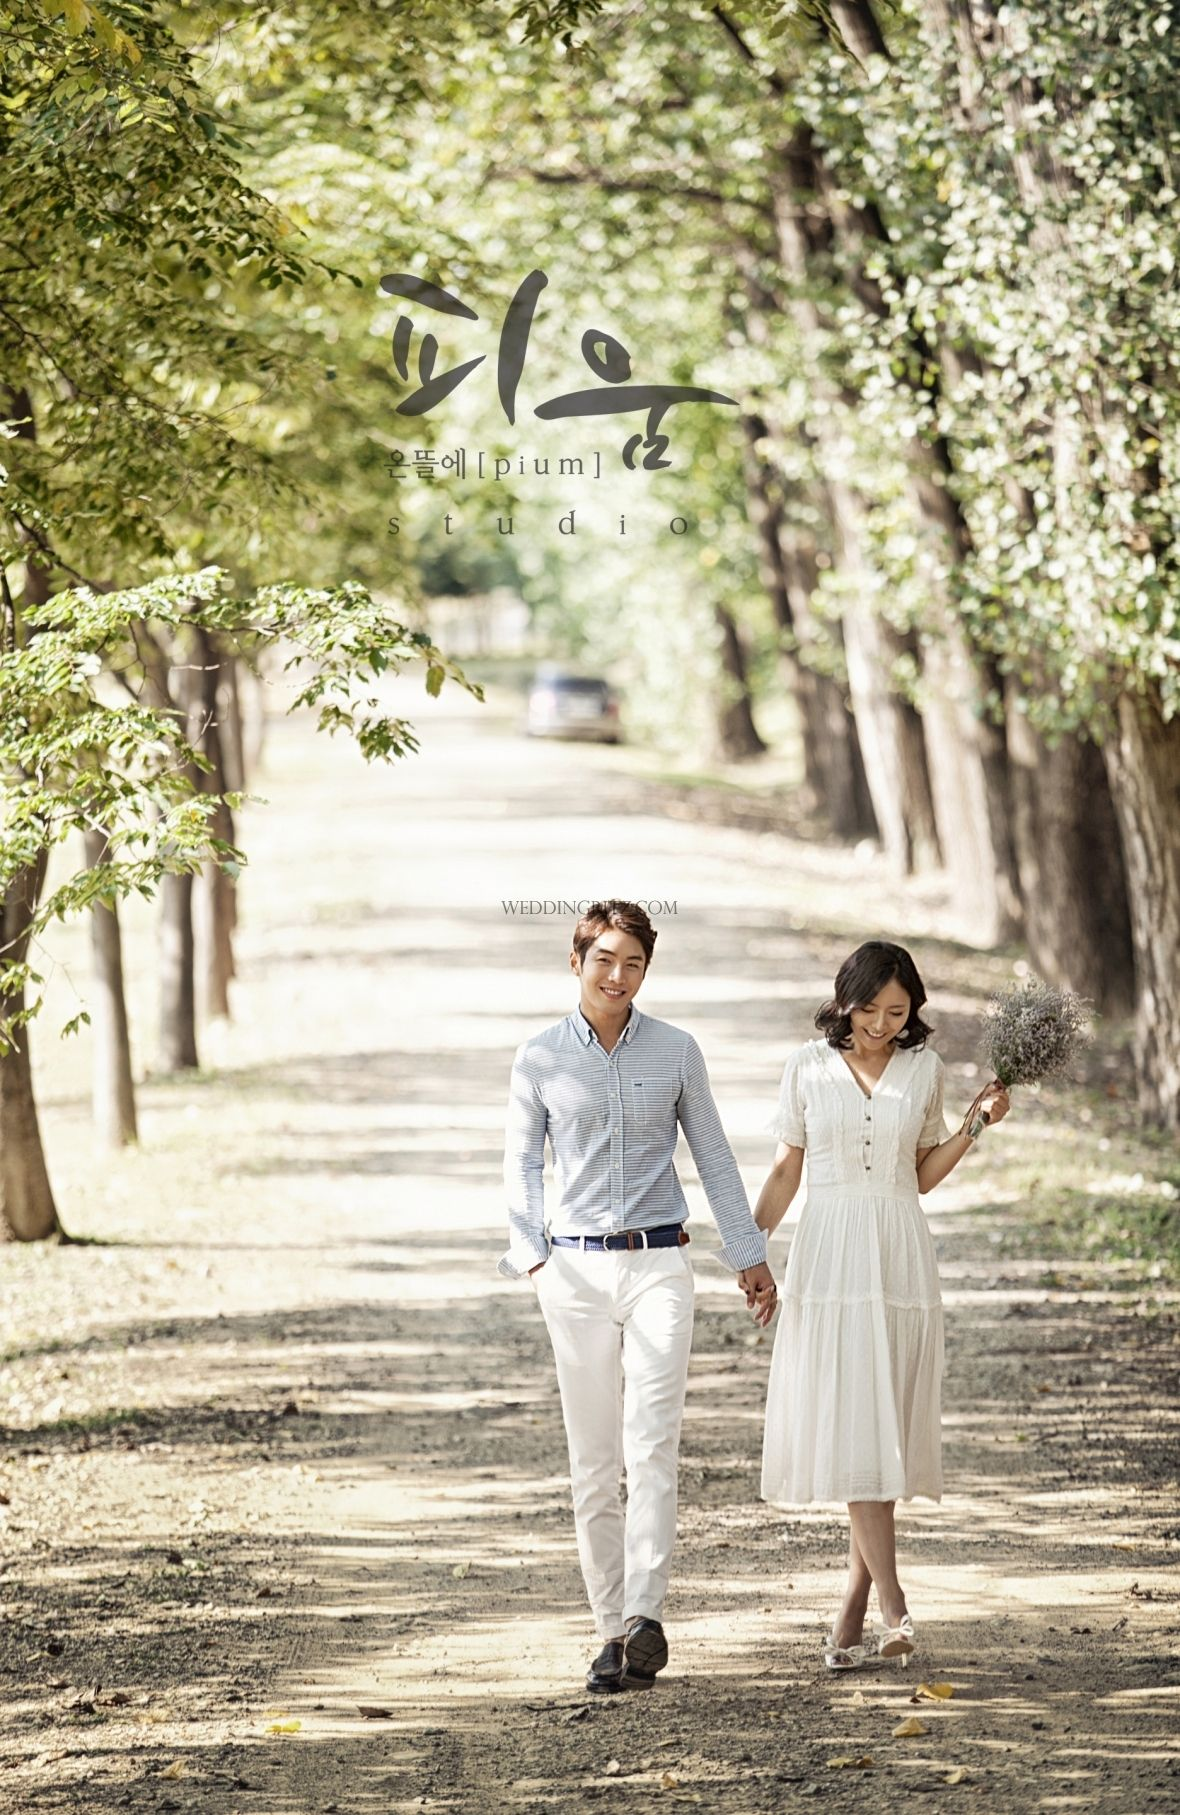 81f5c902c3a7 Here are some korea pre-wedding outdoor photoshoots samples of Jade garden